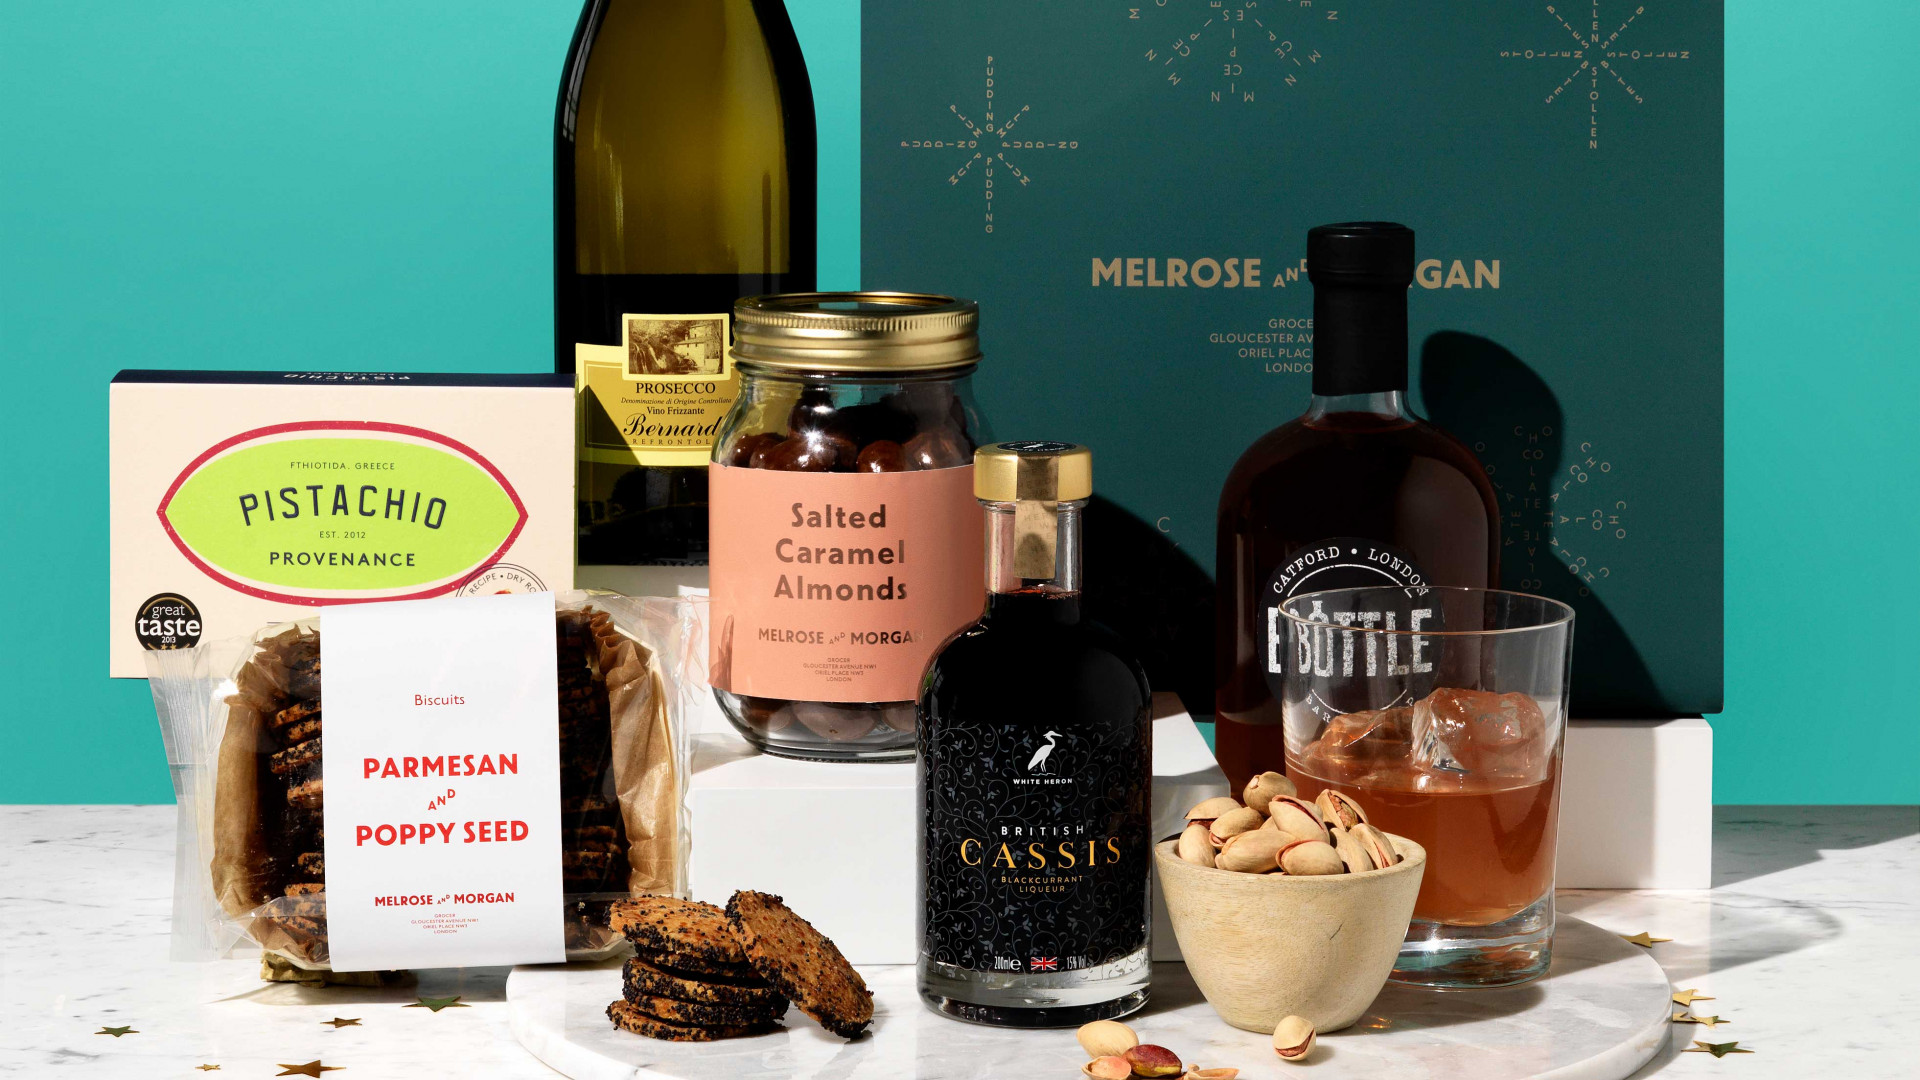 Gift hampers from Melrose and Morgan